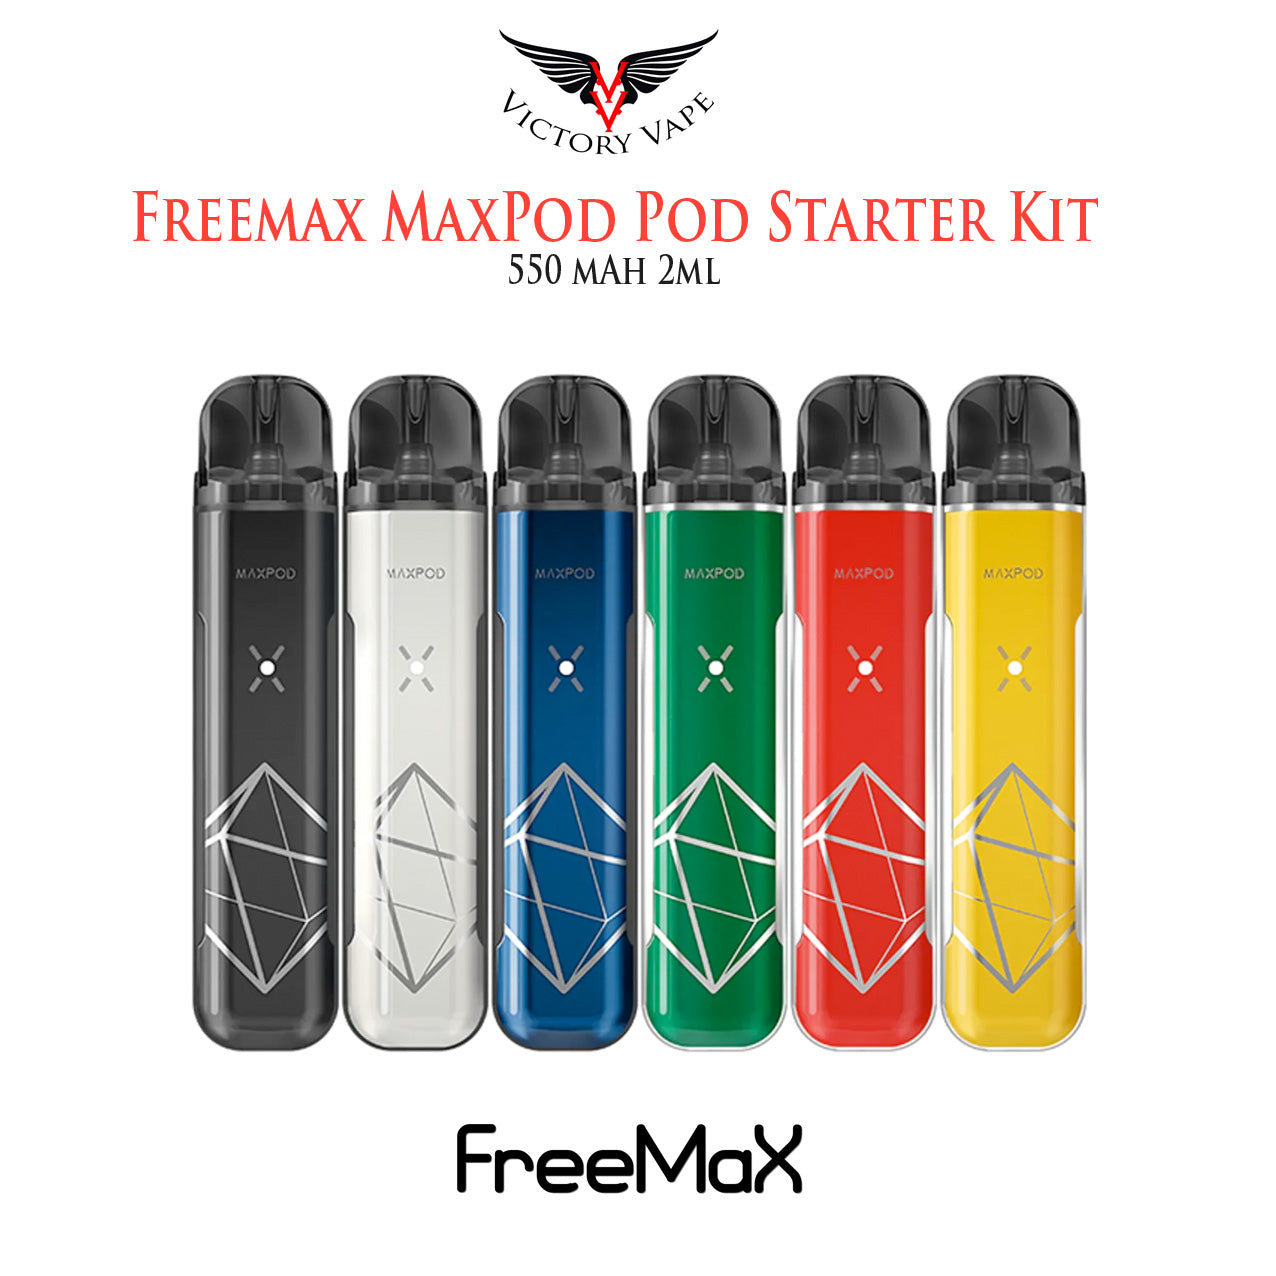 Freemax Maxpod Pod Starter Kit • 550 mAh 2ml